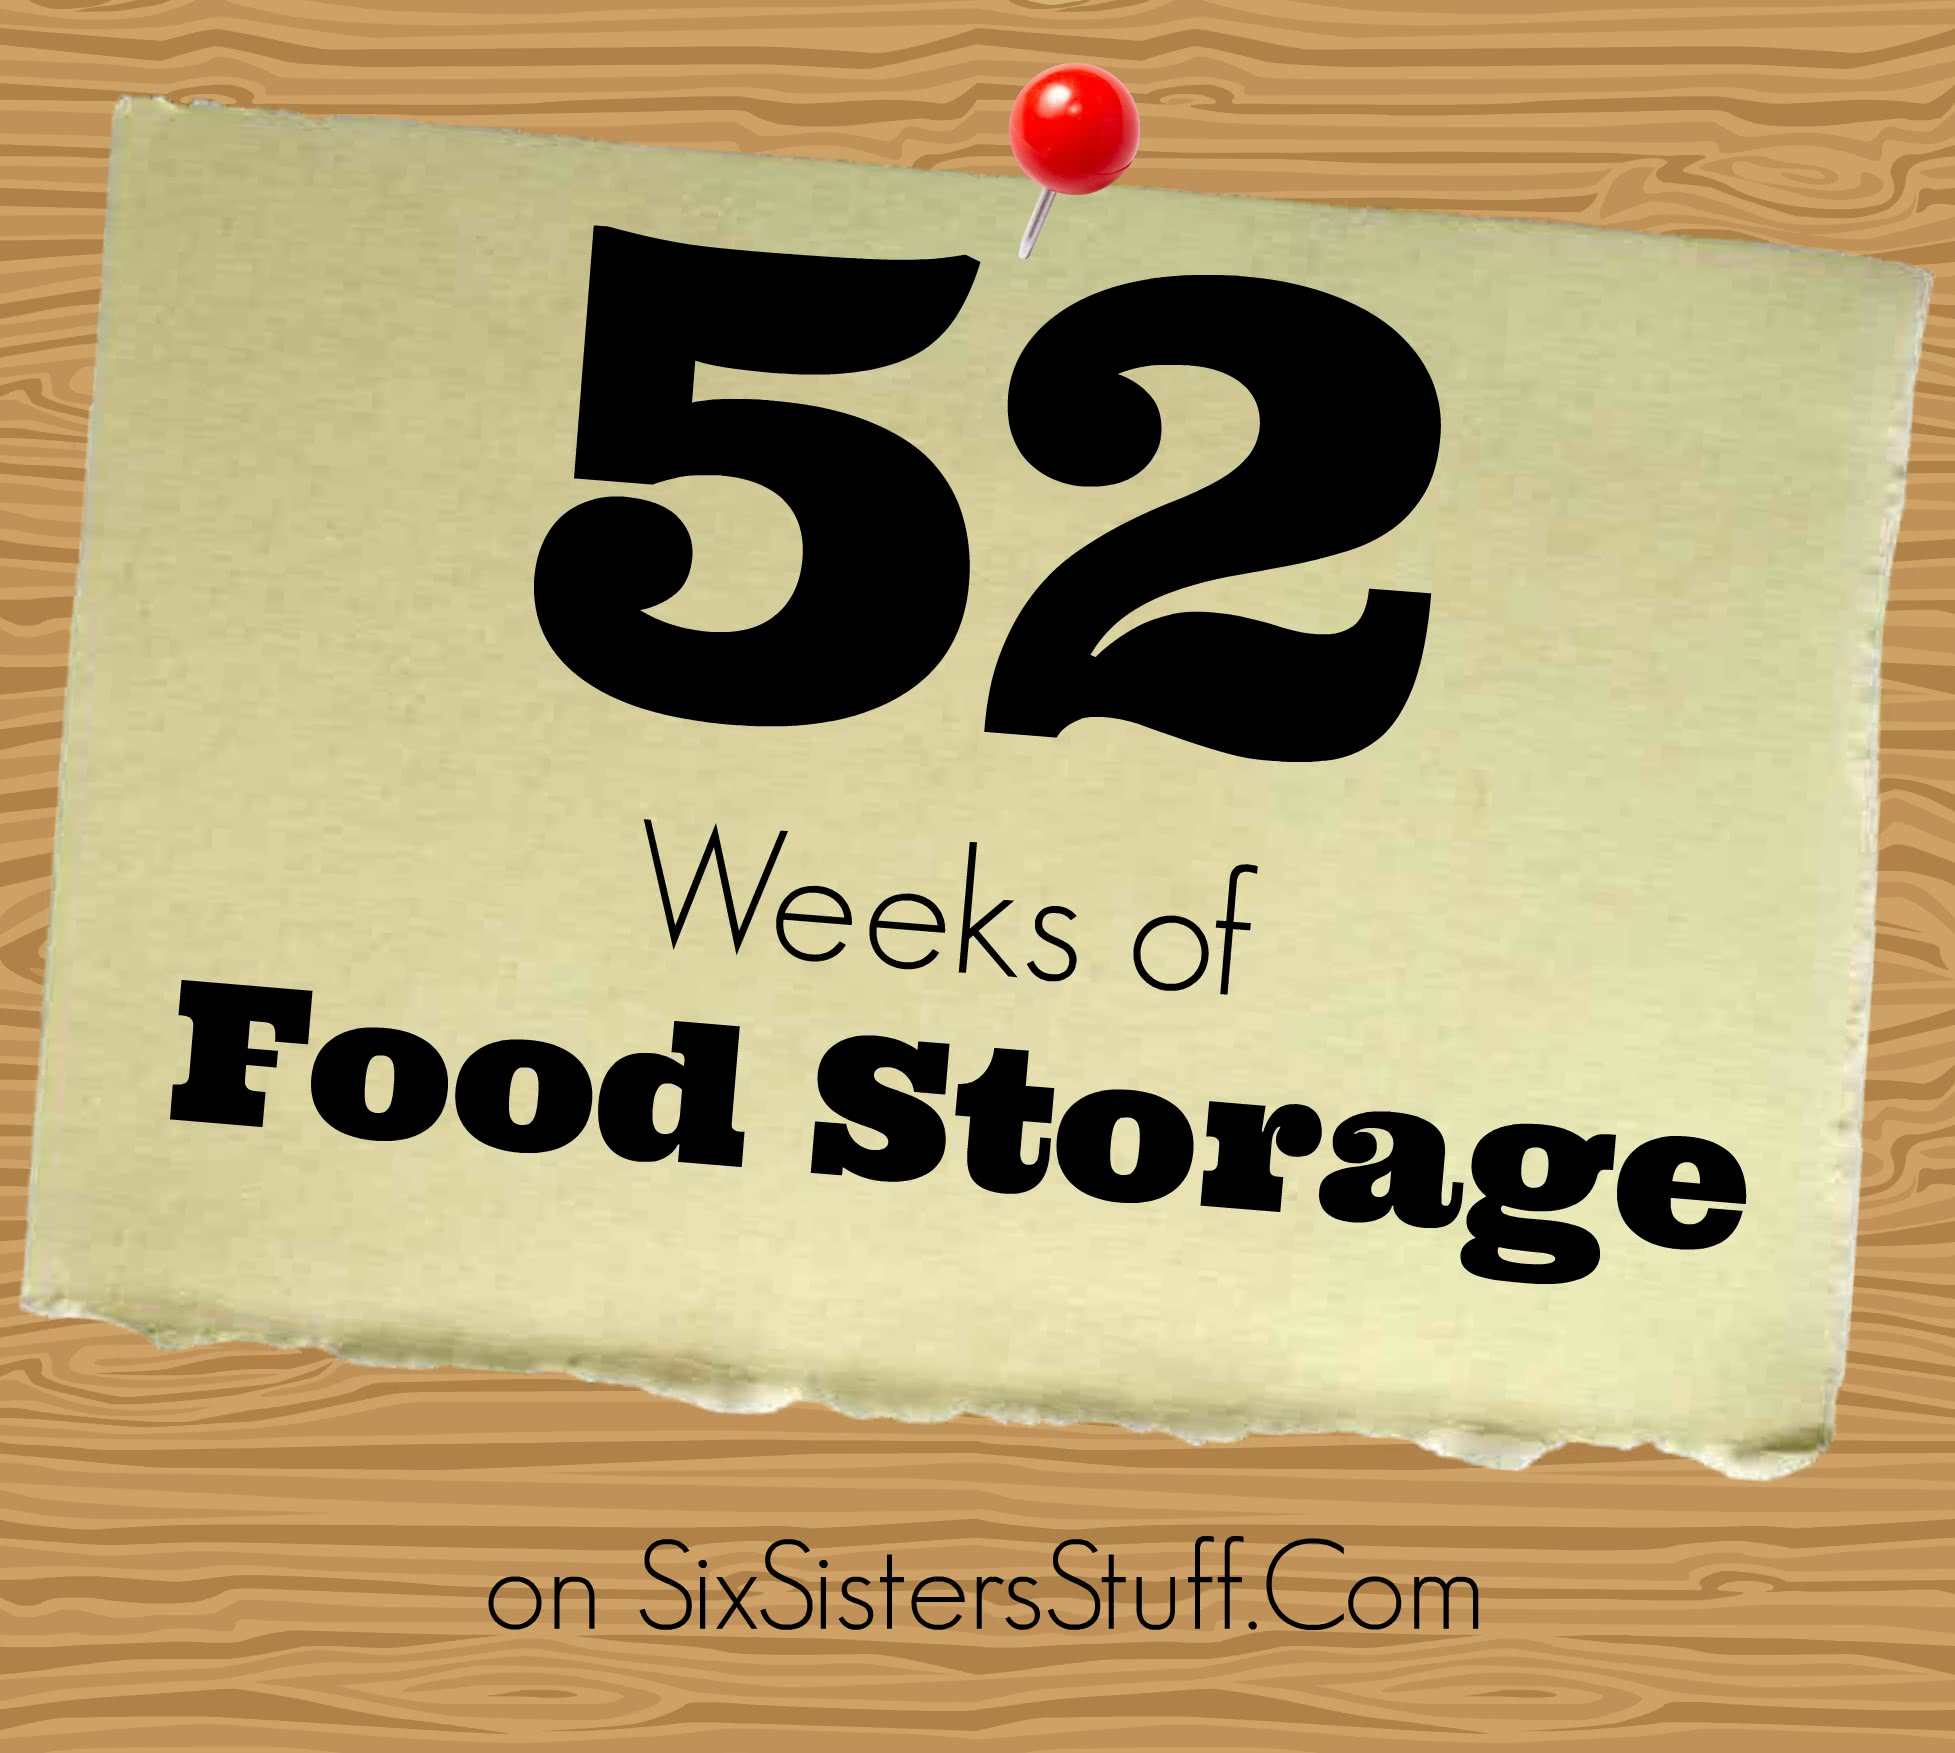 52-weeks-of-food-storage